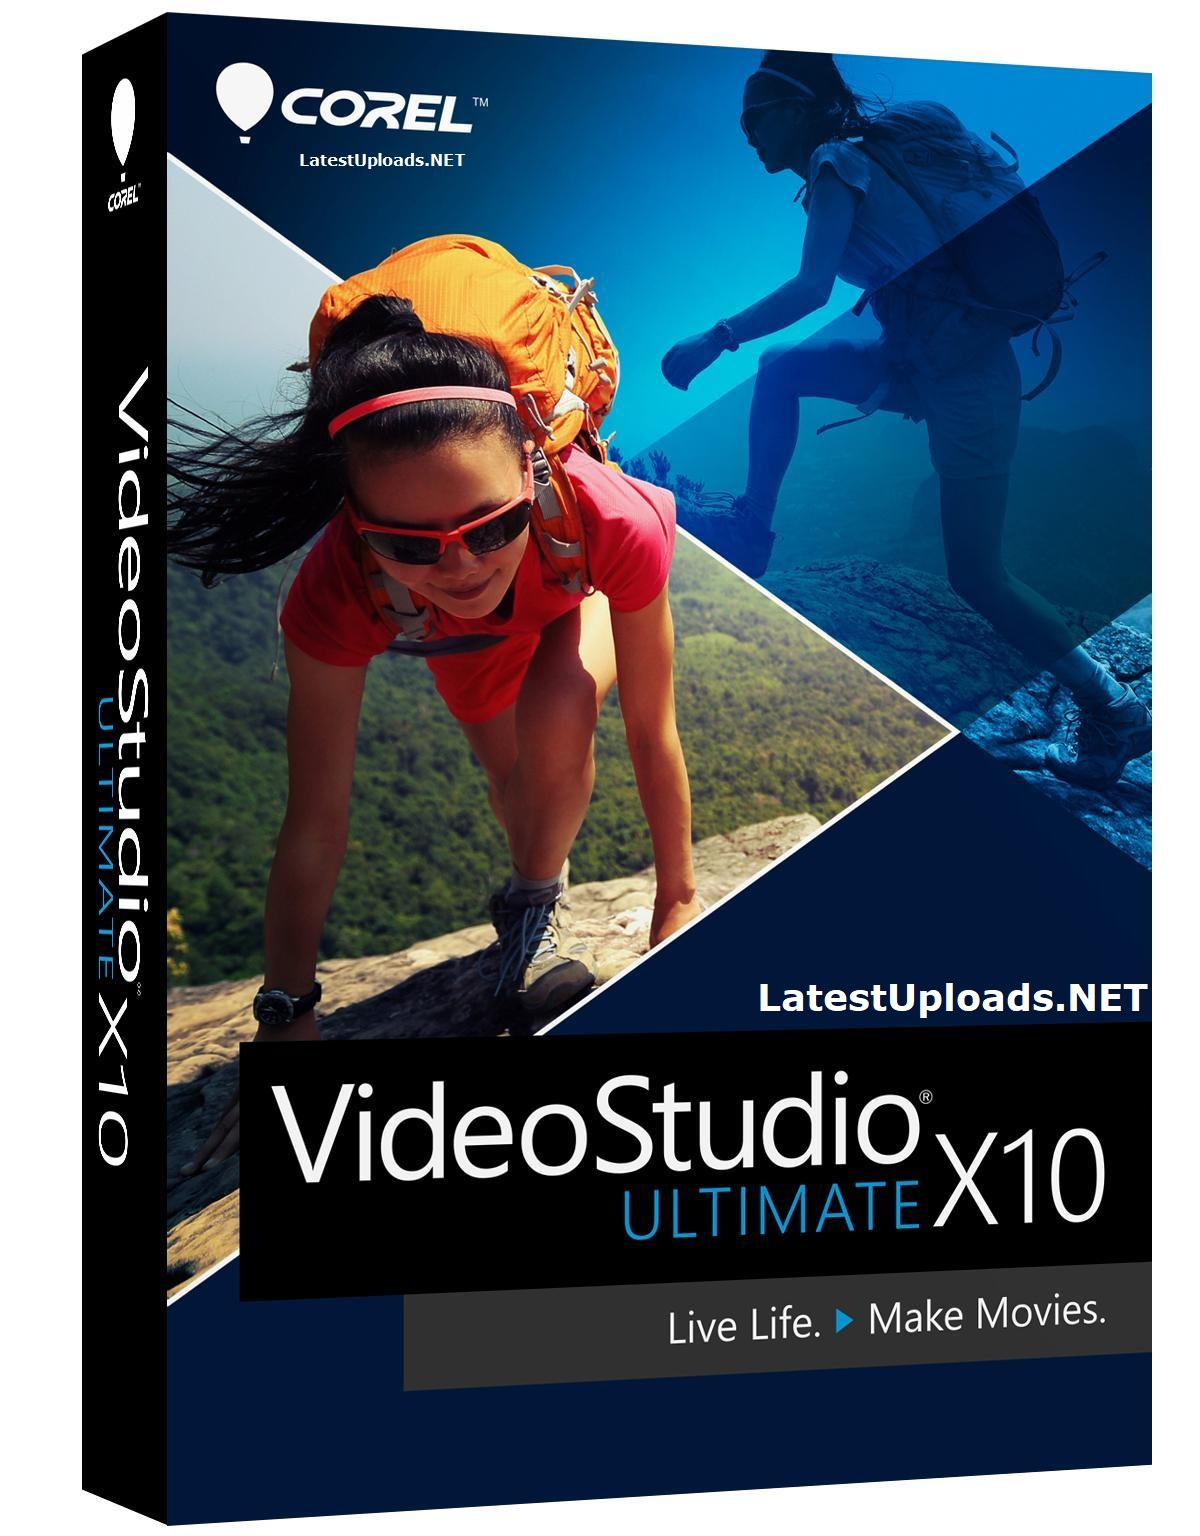 corel video studio templates download - corel videostudio ultimate x10 v20 5 latestuploads net